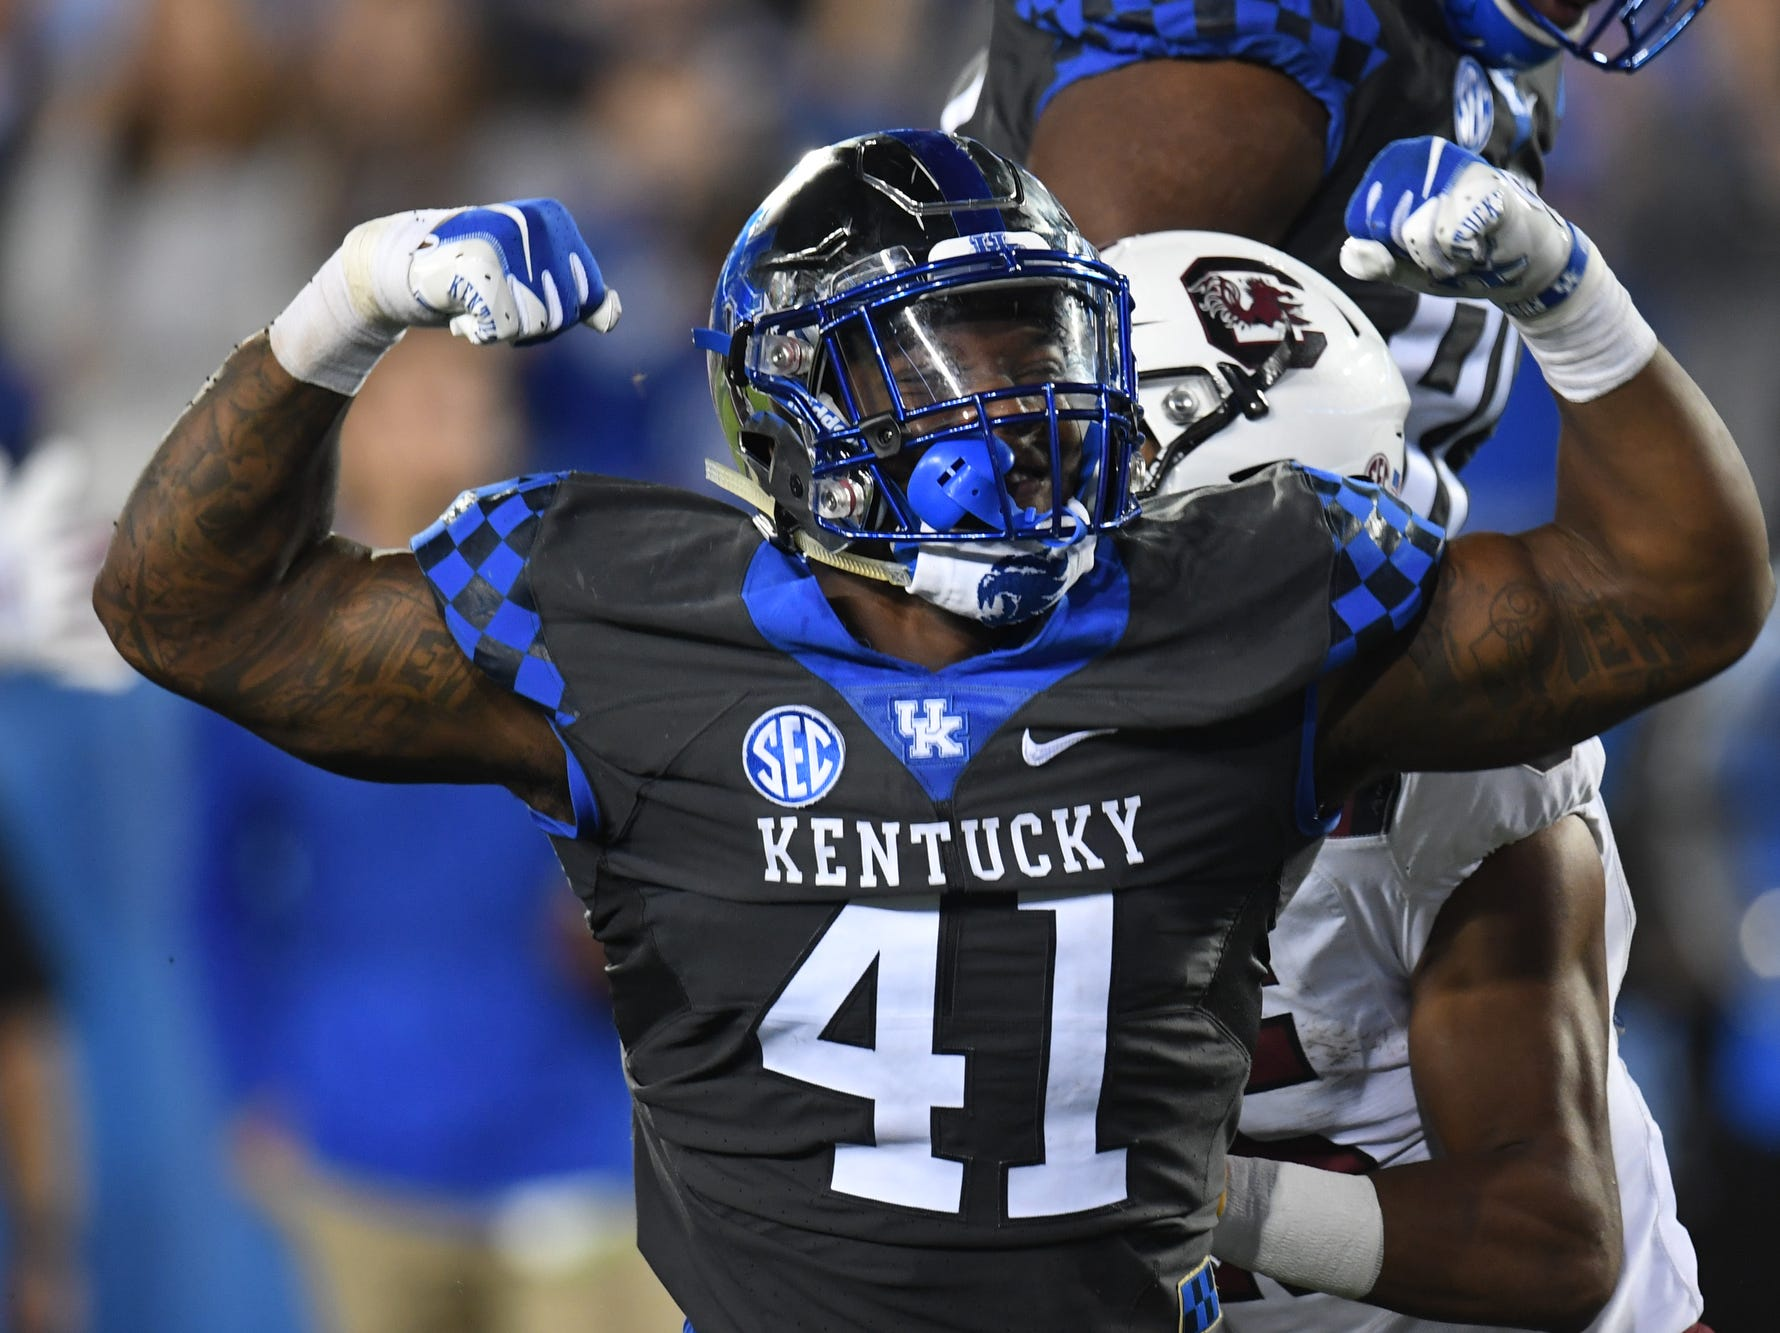 UK DE Josh Allen celebrates during the University of Kentucky football game against South Carolina at Kroger Field in Lexington, Kentucky on Saturday, September 29, 2018.